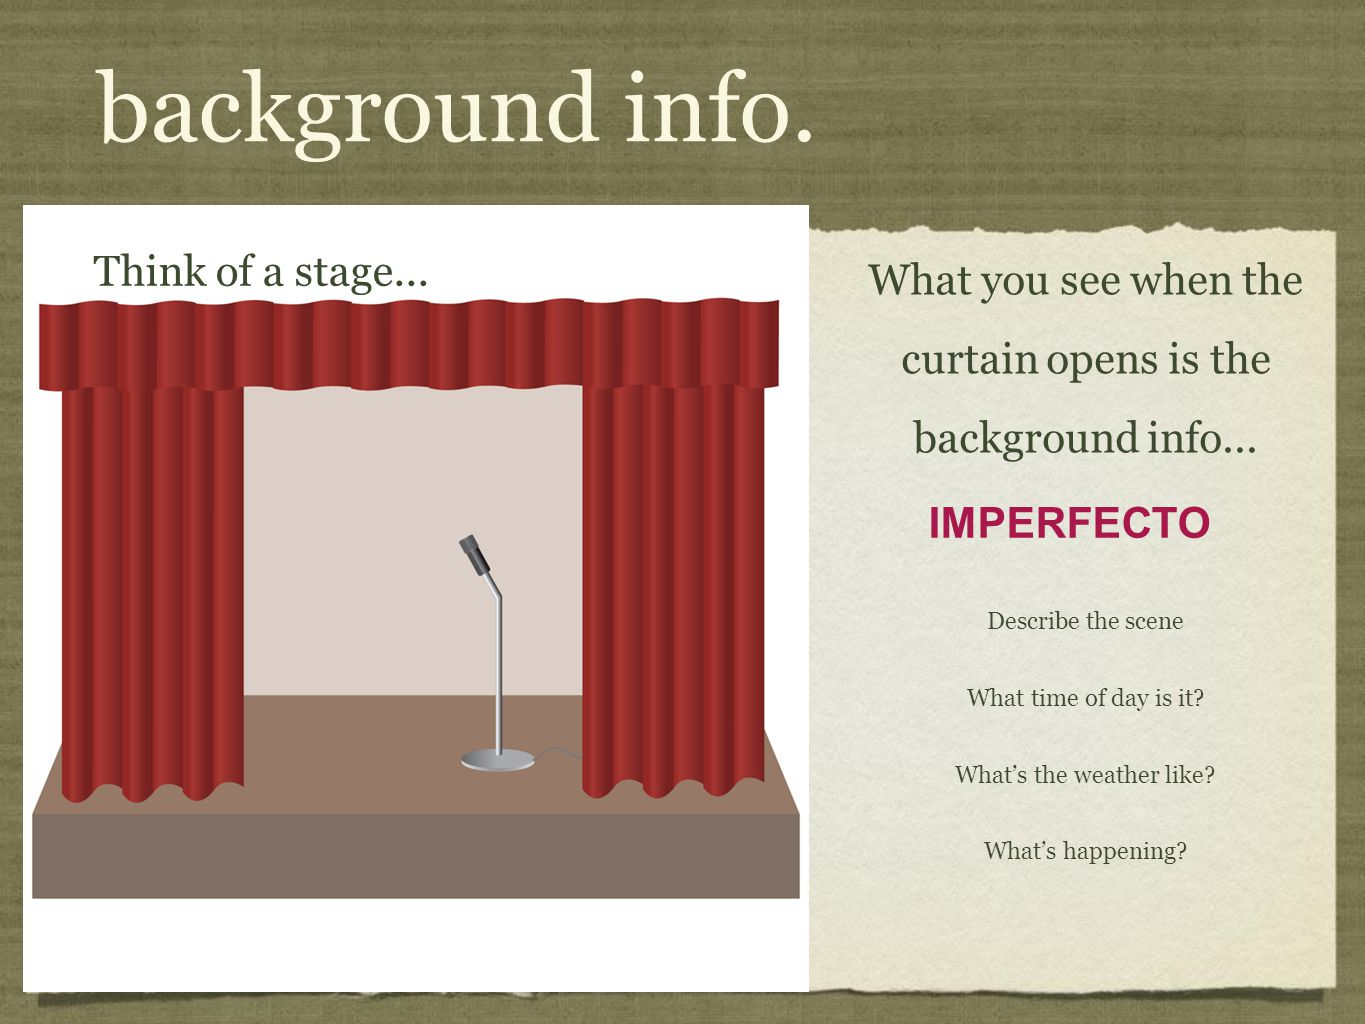 background info. Think of a stage...